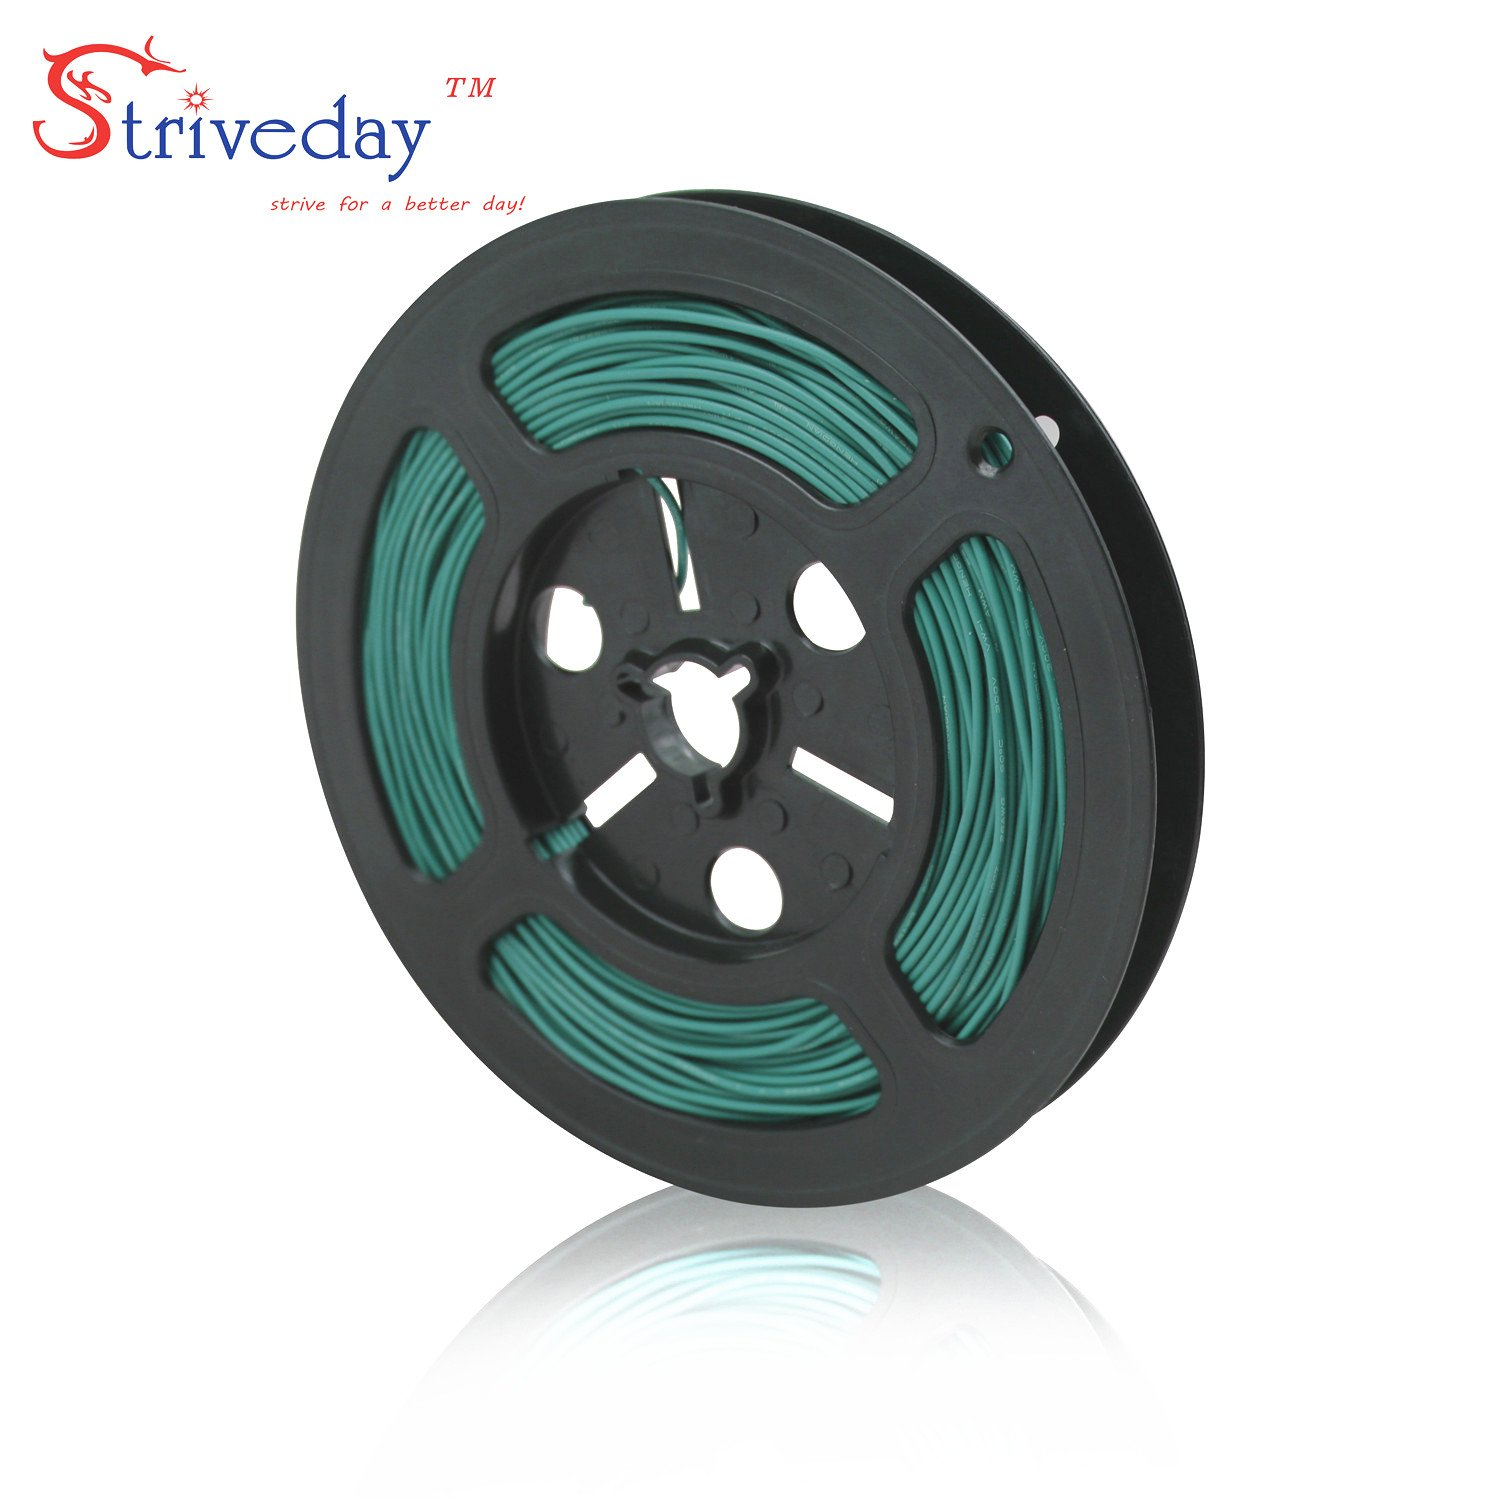 Striveday/™ 1007 24AWG Electric wire 24 Gauge//AWG Electronic Stranded Coper Wire Cable Hook Up Wire For DIY 300V Cables 24AWG-Black-10m